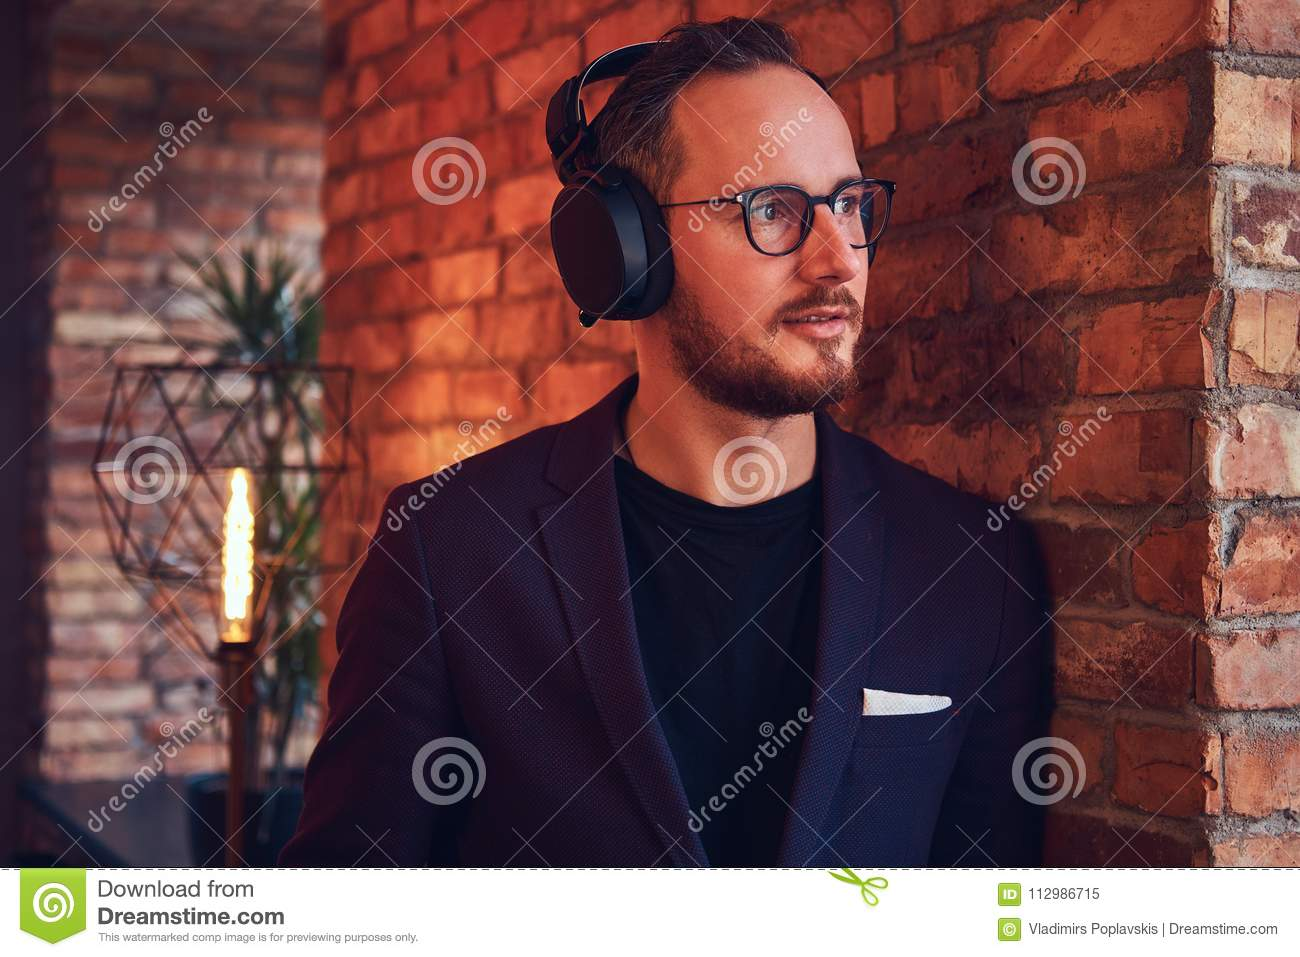 Close-up portrait of a handsome bearded male wearing stylish suit listening music in headphones against a brick wall.